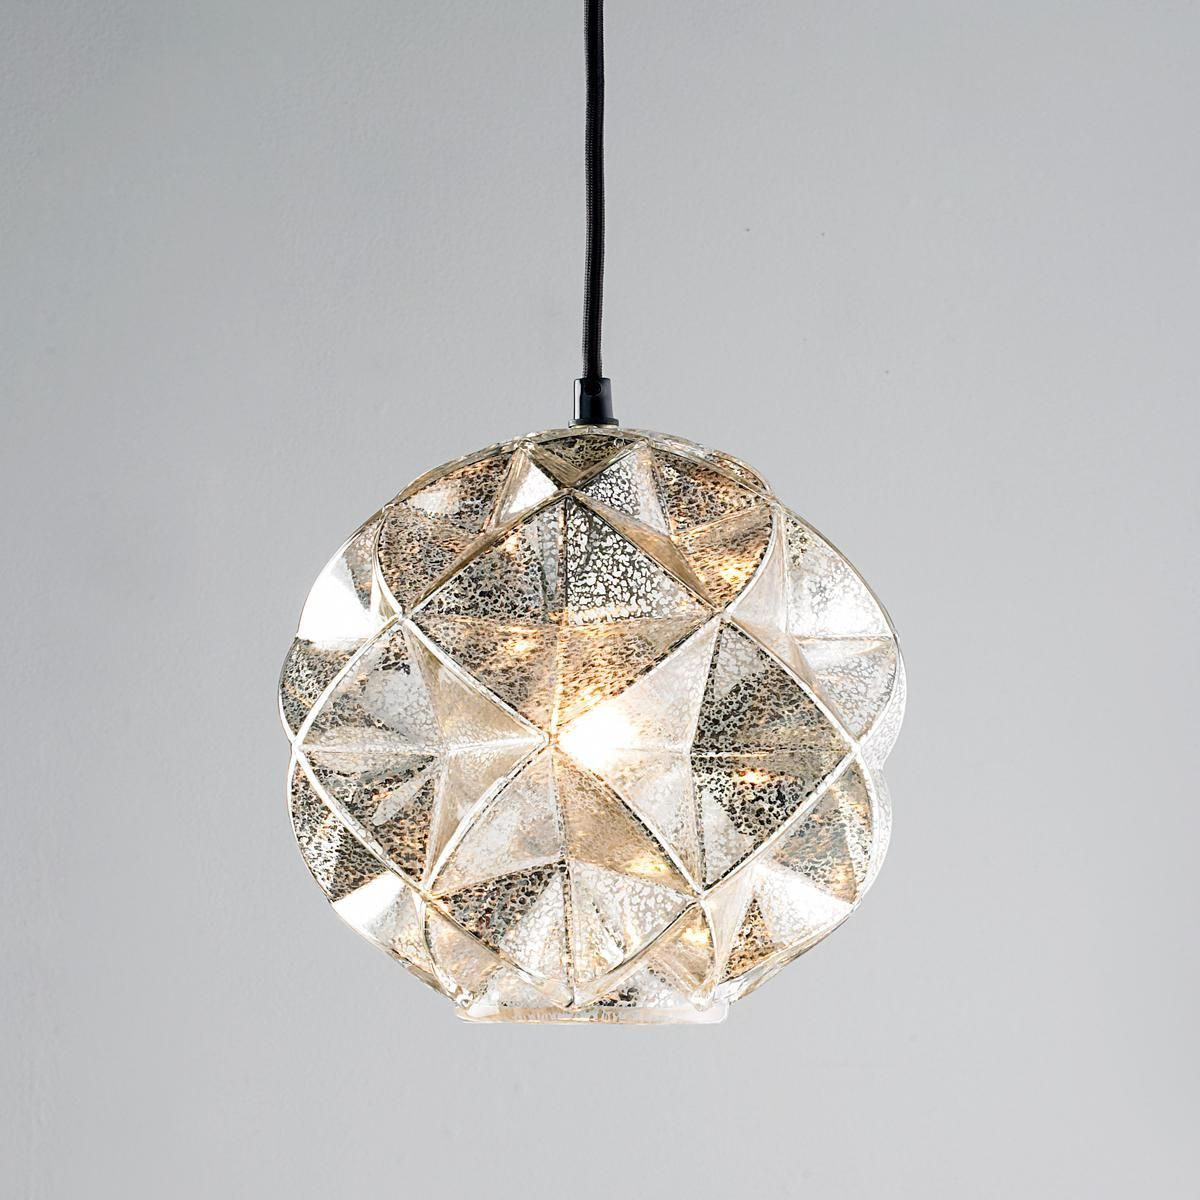 Mercury Glass Pendant Light Fixture Best Mercury Glass Geodesic Dome Pendant Light  Mercury Glass Pendant Design Inspiration